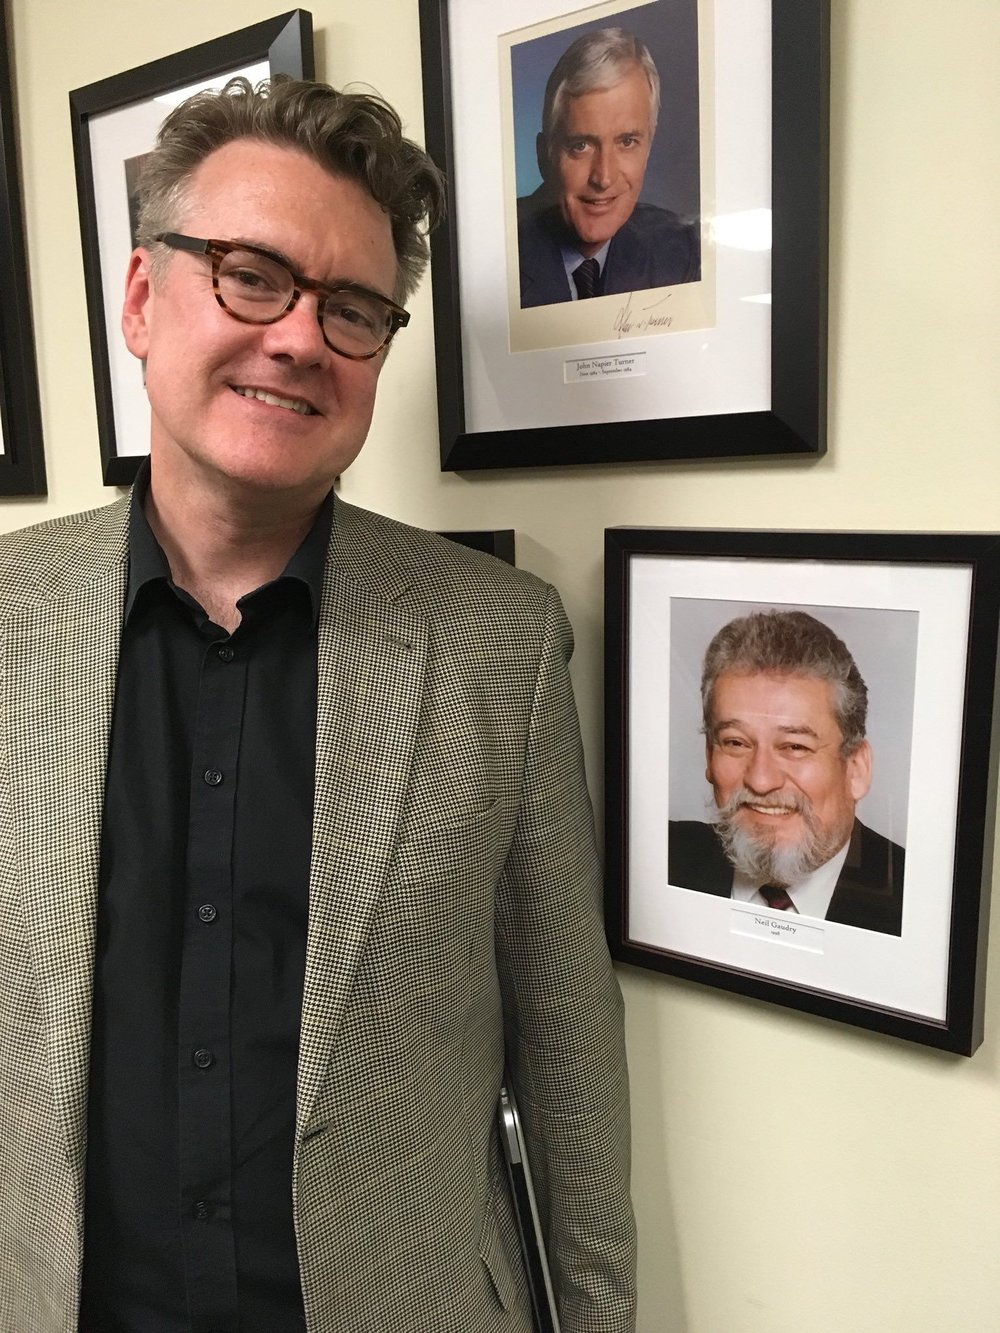 The current and previous Liberal MLAs for Saint-Boniface, Dougald Lamont and Neil Gaudry